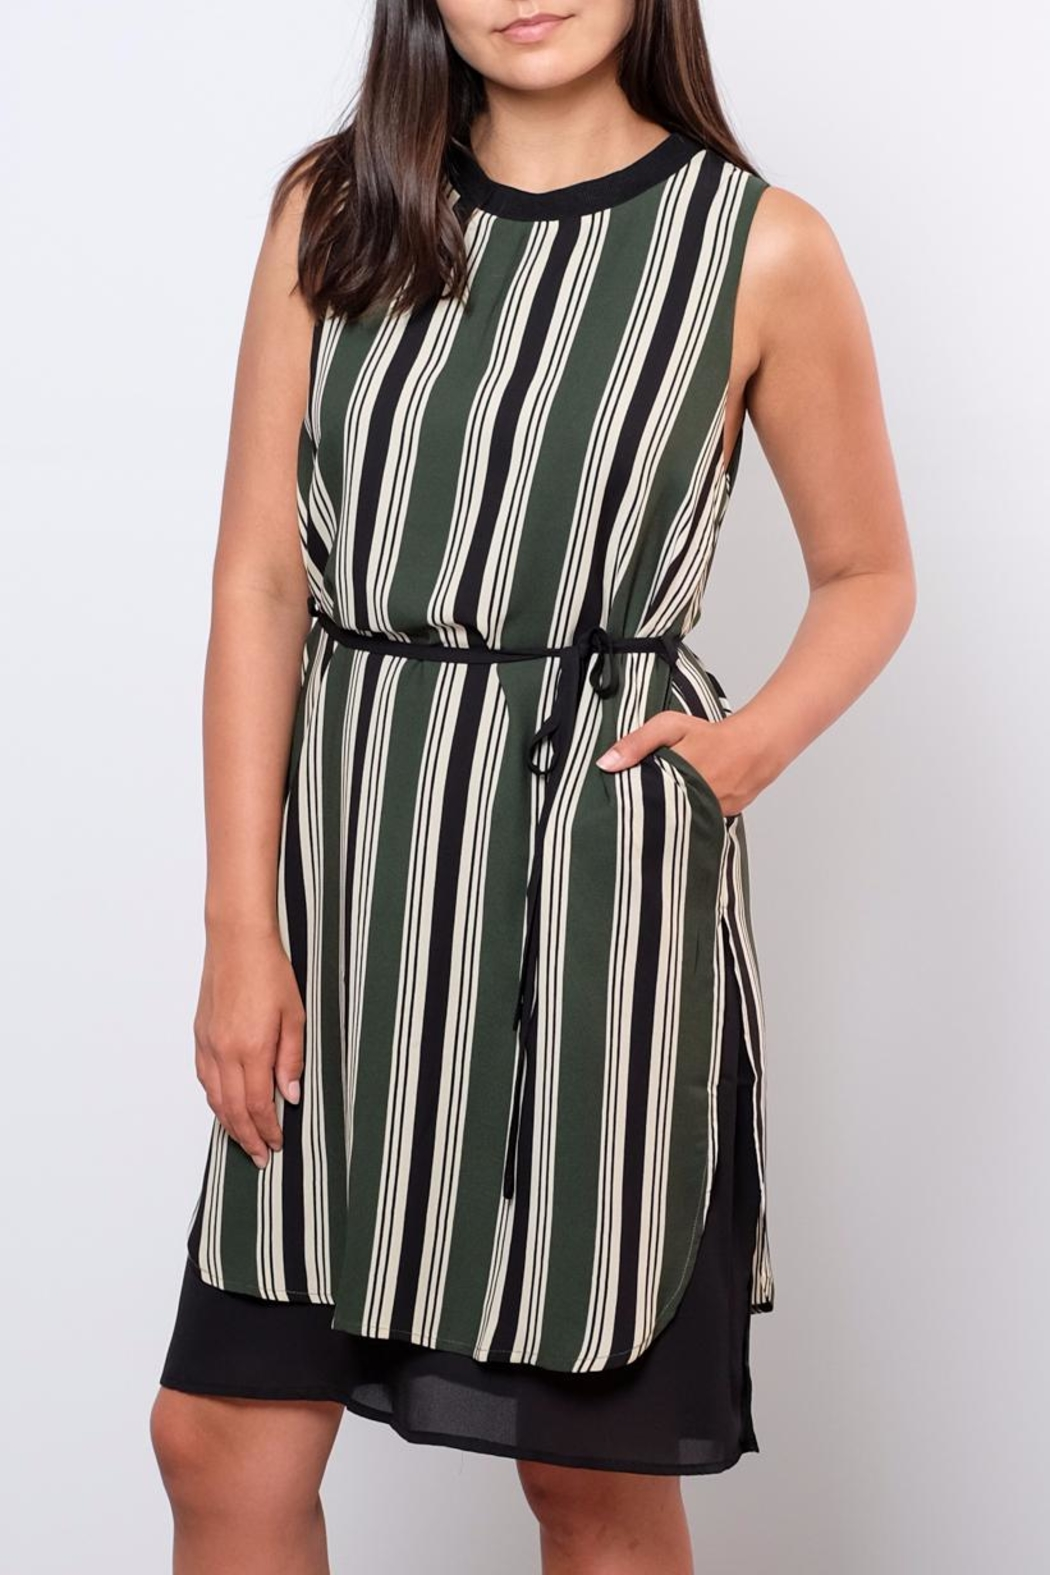 Everly Striped Shift Dress - Side Cropped Image